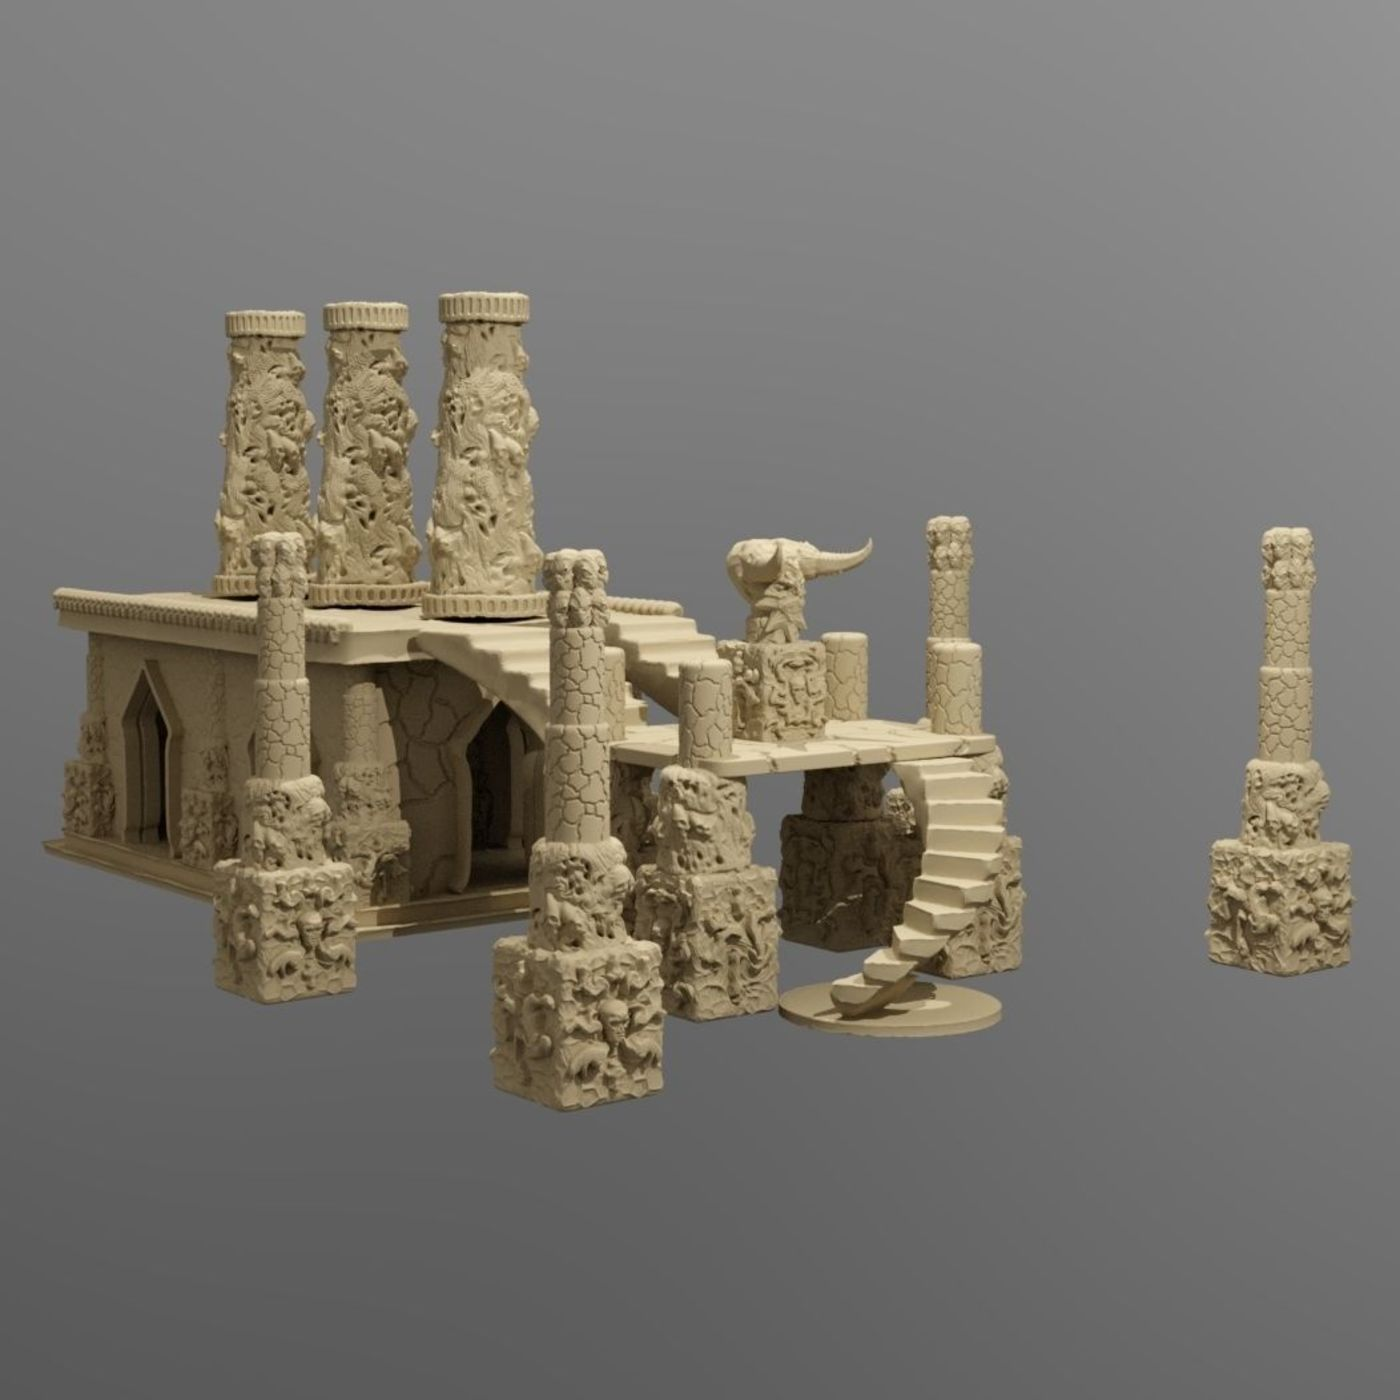 image relating to Printable Scenery identified as Temple of the Demon King Printable Landscapes CGTrader